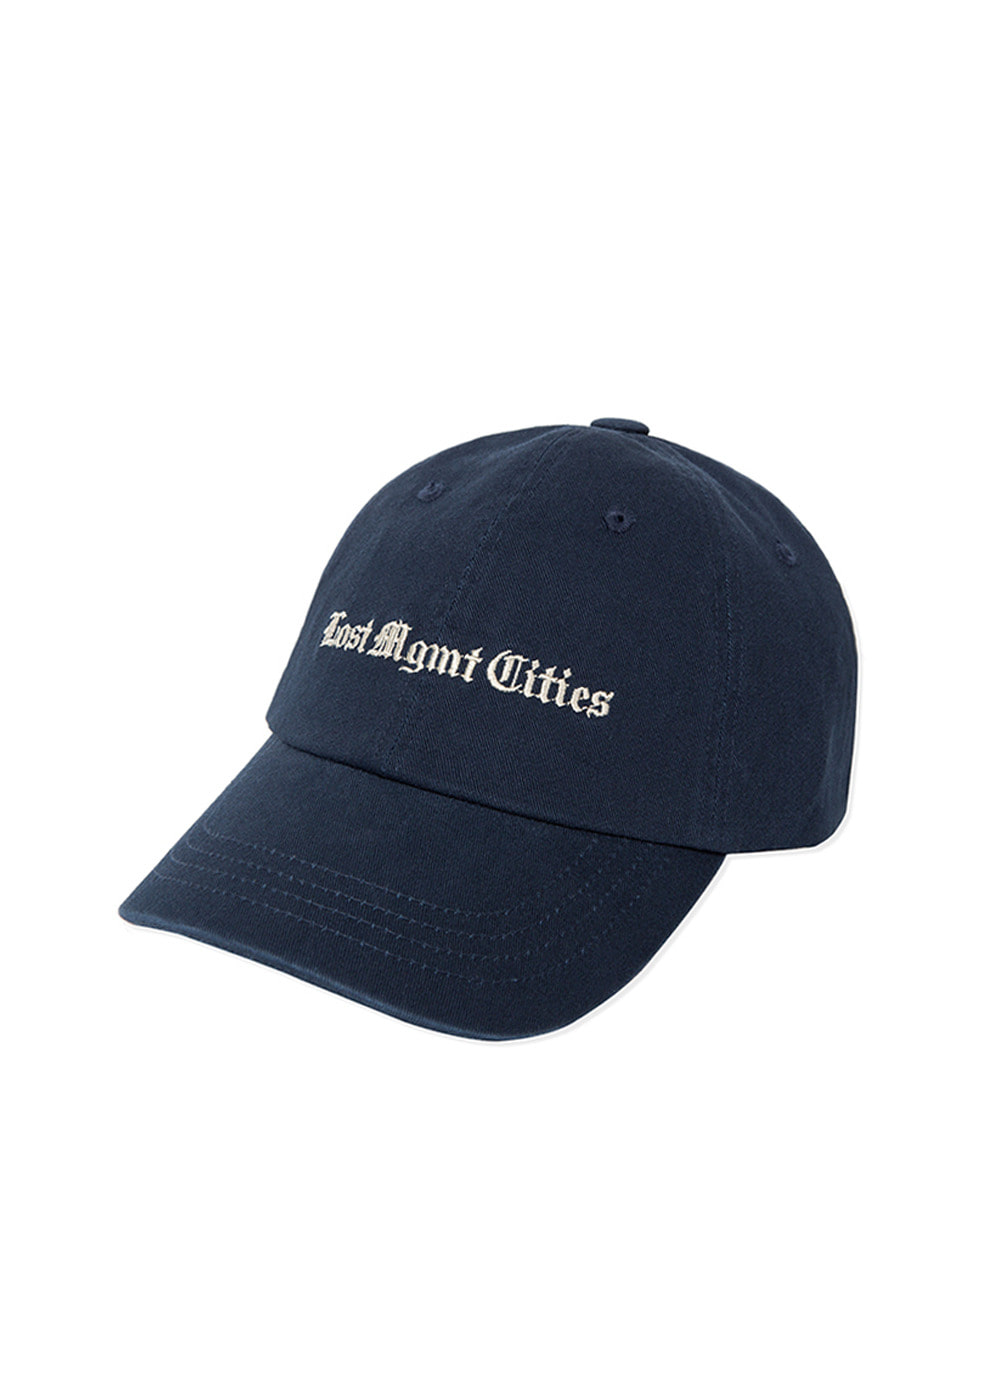 LMC TIMES WASHED 6 PANEL CAP navy